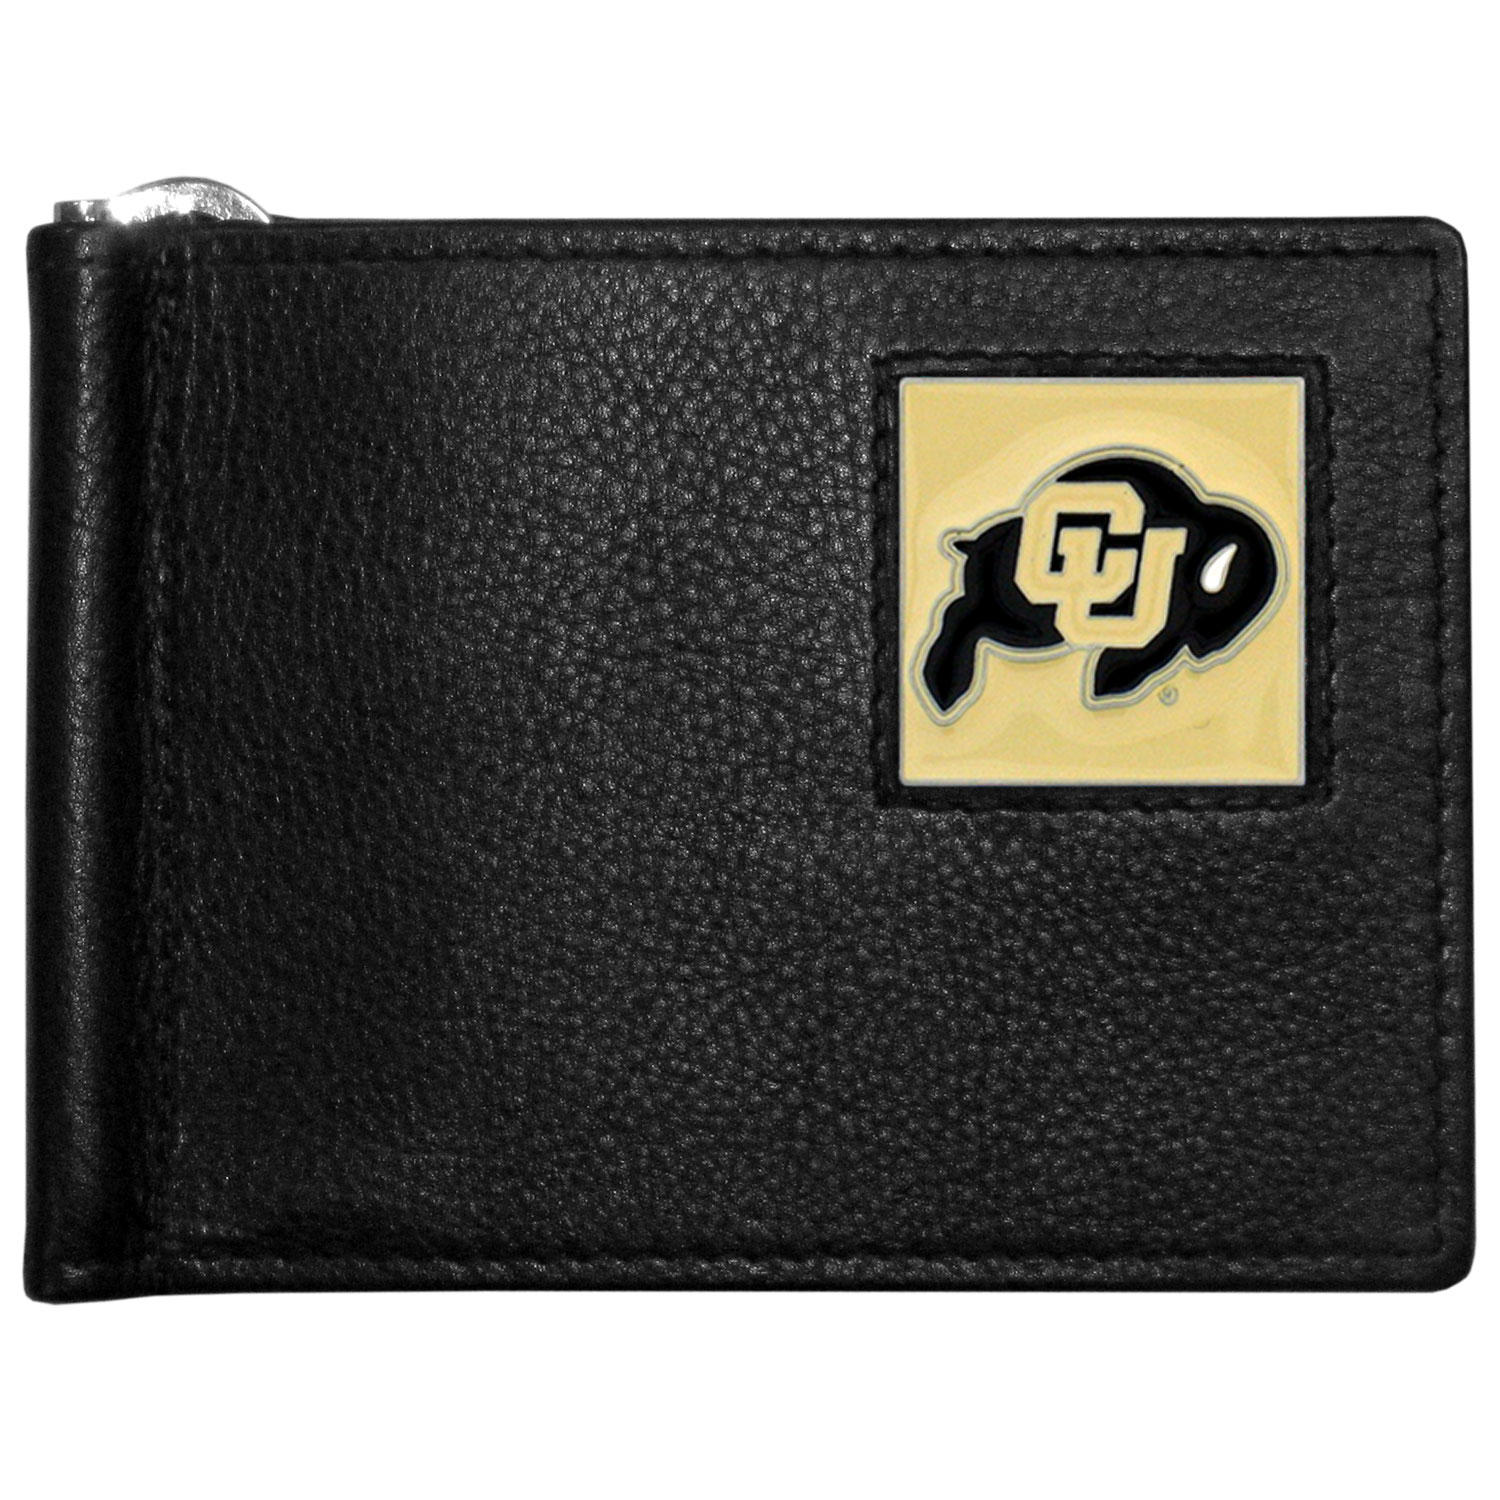 Colorado Buffaloes Leather Bill Clip Wallet - This cool new style wallet features an inner, metal bill clip that lips up for easy access. The super slim wallet holds tons of stuff with ample pockets, credit card slots & windowed ID slot.  The wallet is made of genuine fine grain leather and it finished with a metal Colorado Buffaloes emblem. The wallet is shipped in gift box packaging.